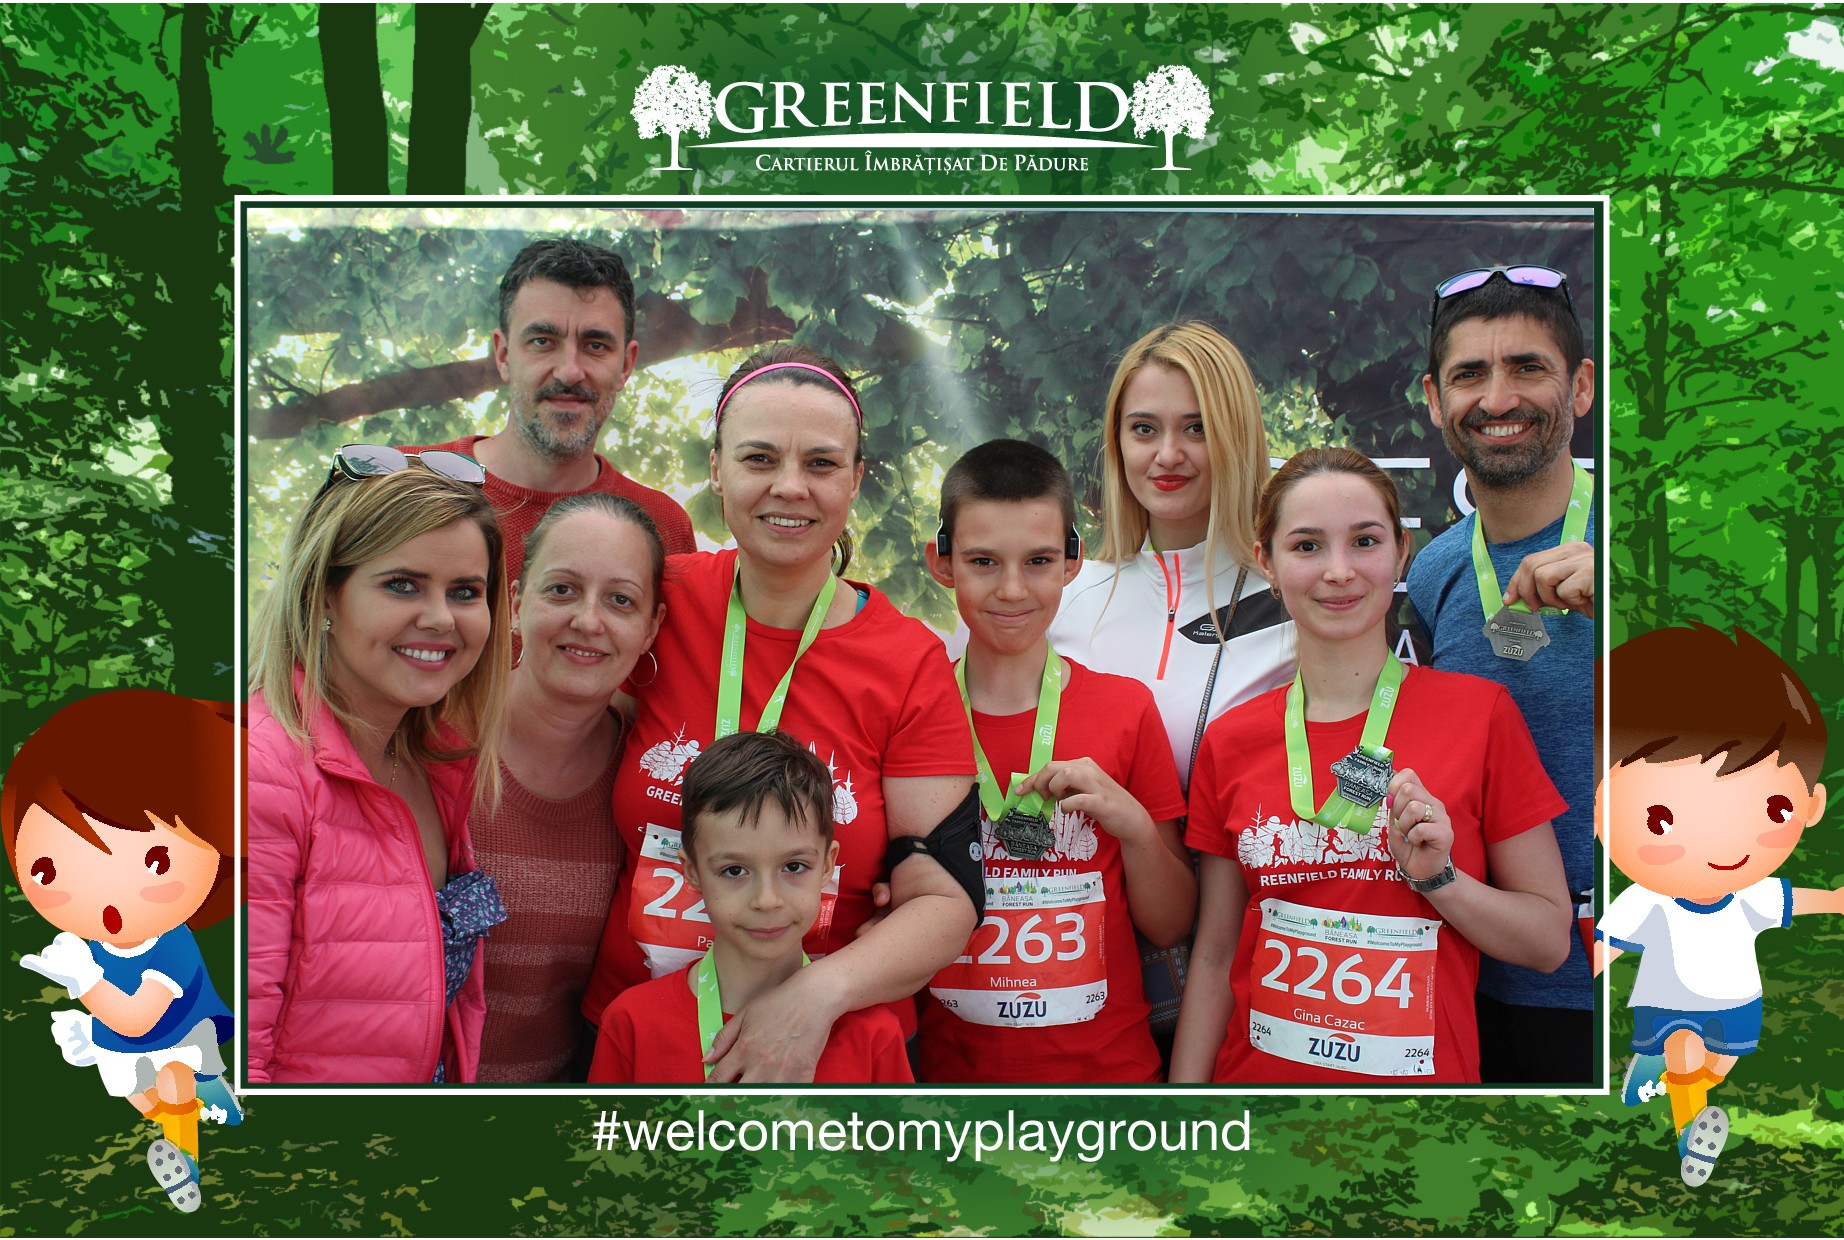 Greenfield Family Run martie 2019 (47)